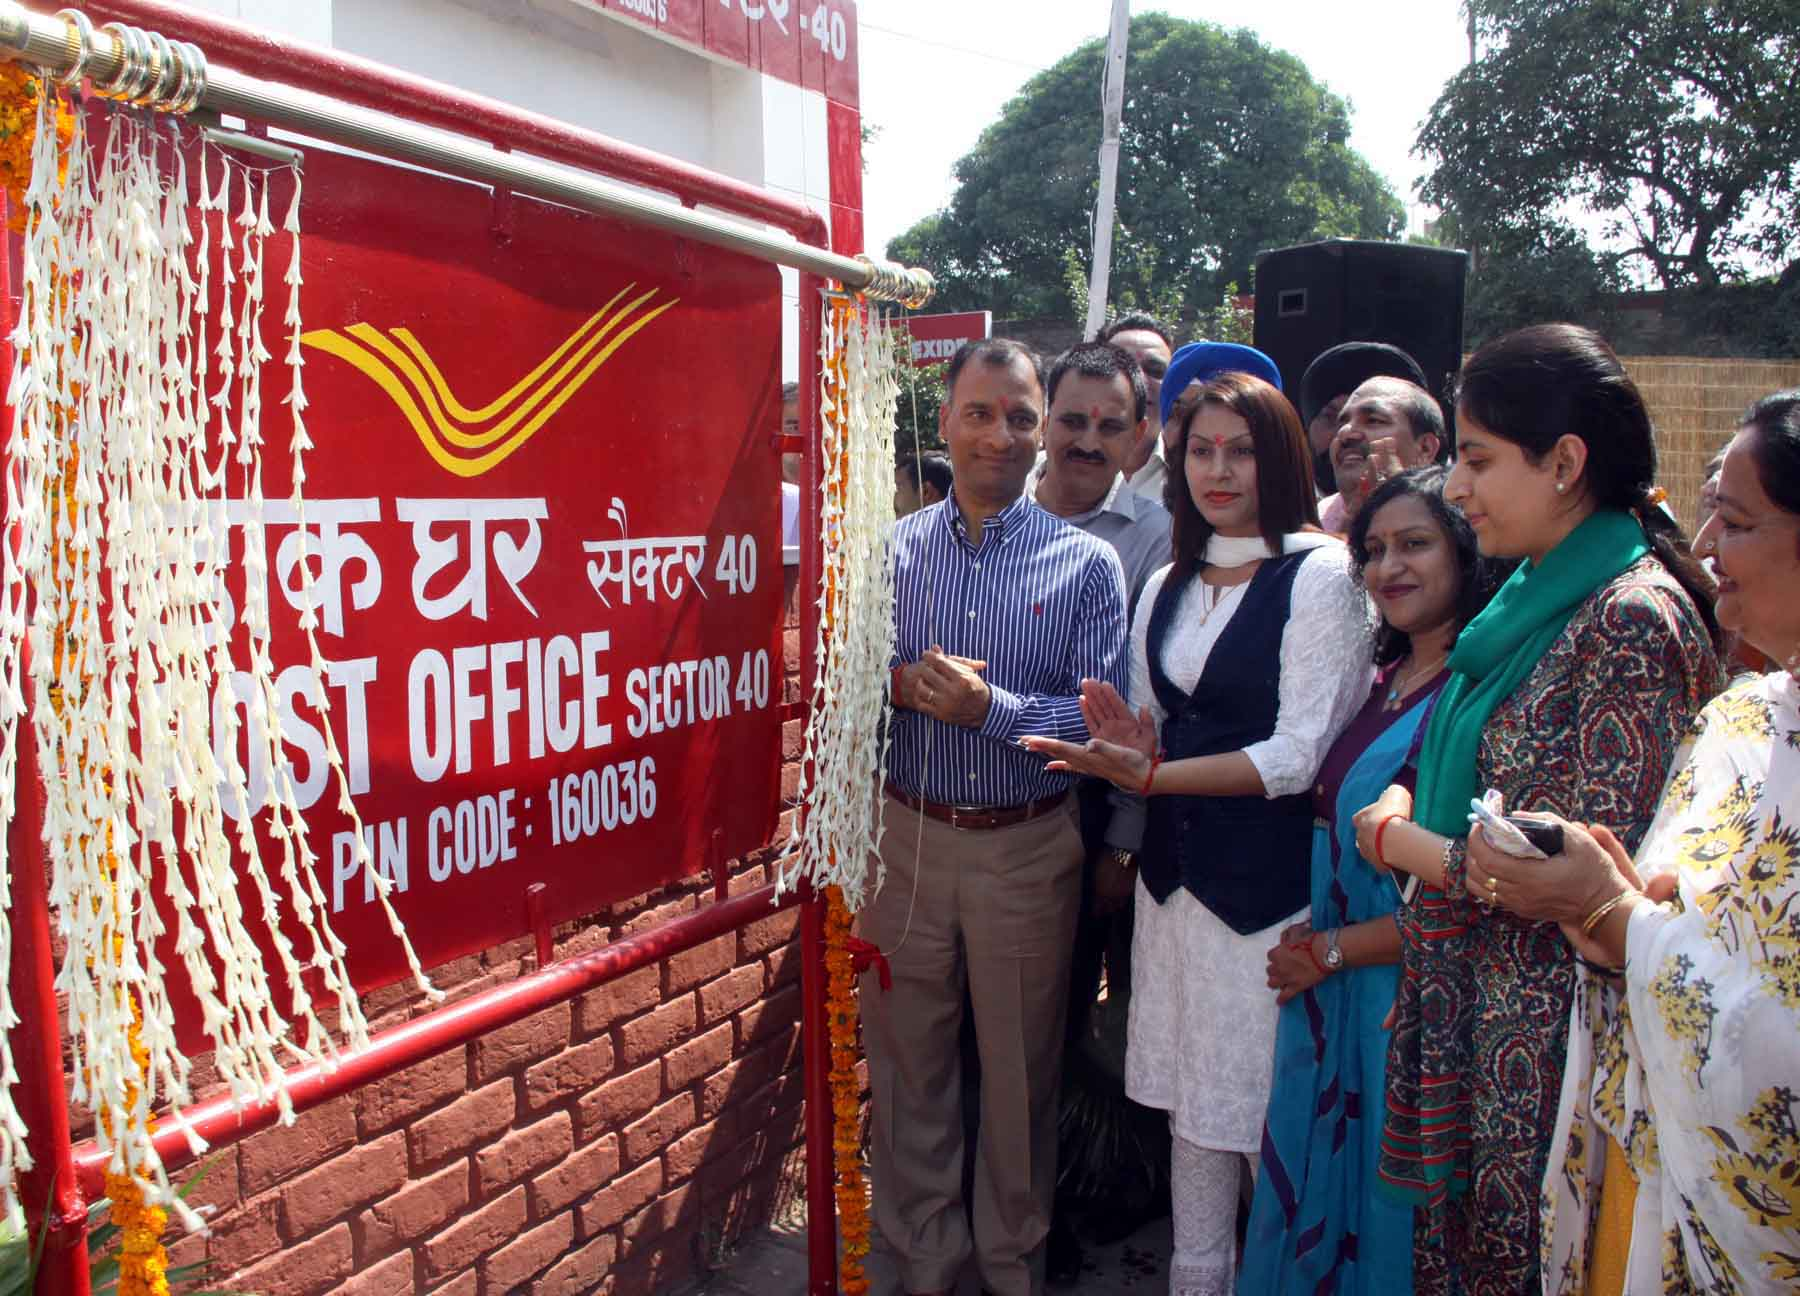 The Adviser to the Administrator, UT, Chandigarh, Mr. Vijay Dev inaugurating the Post Office at Sector-40, Chandigarh on Monday, October 05, 2015.